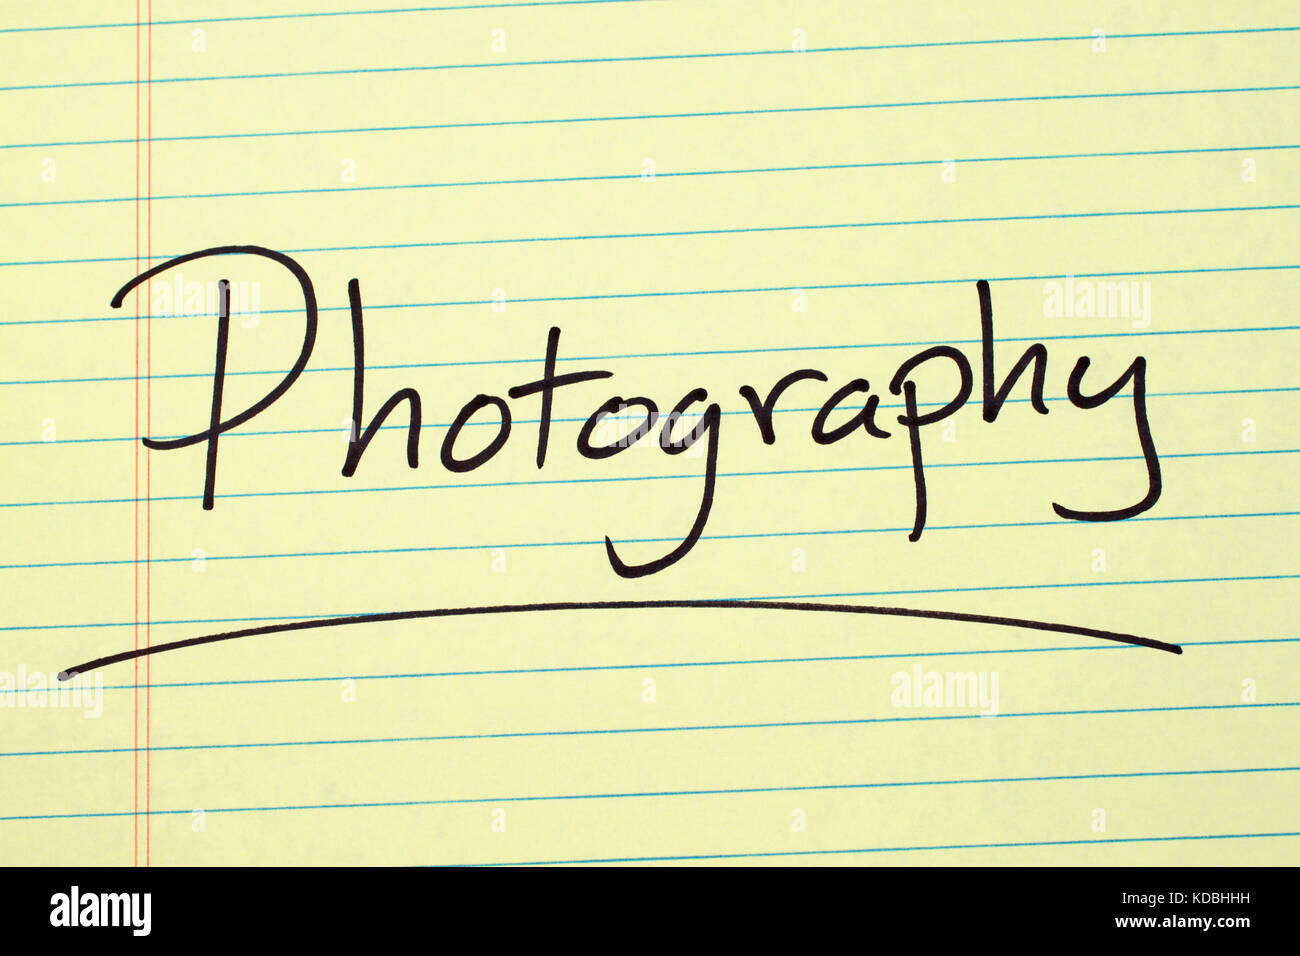 The word 'Photography' underlined on a yellow legal pad - Stock Image